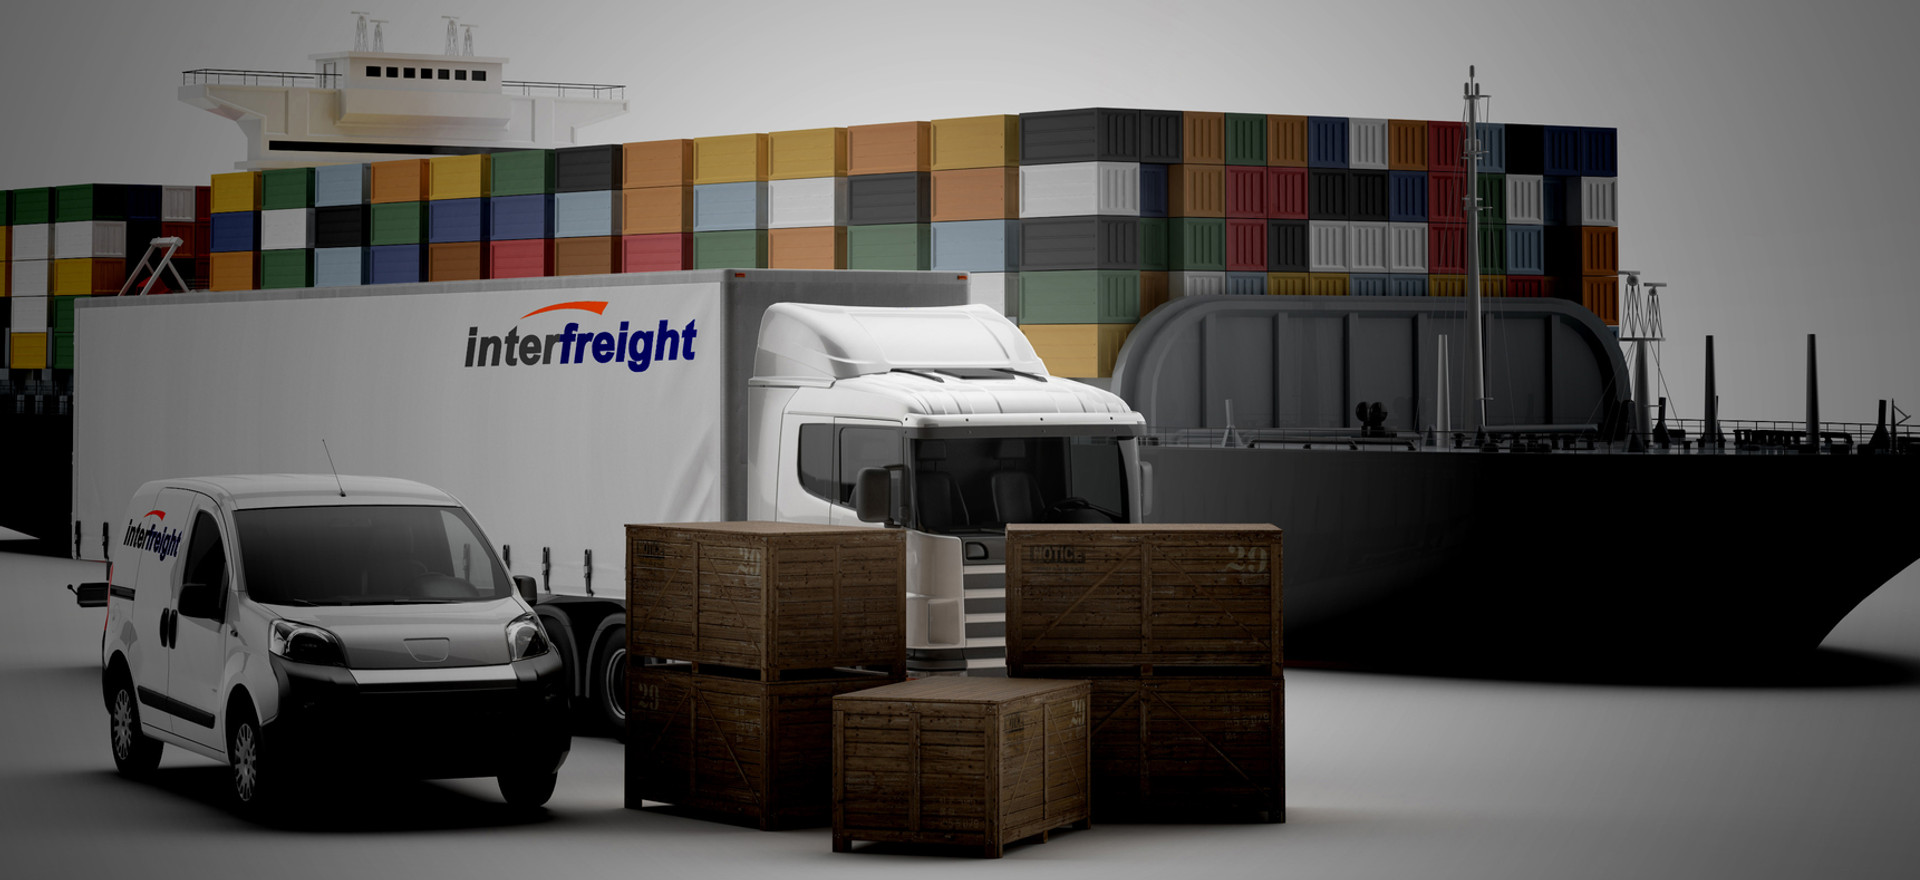 banner 2 interfreight gradient 2.jpg